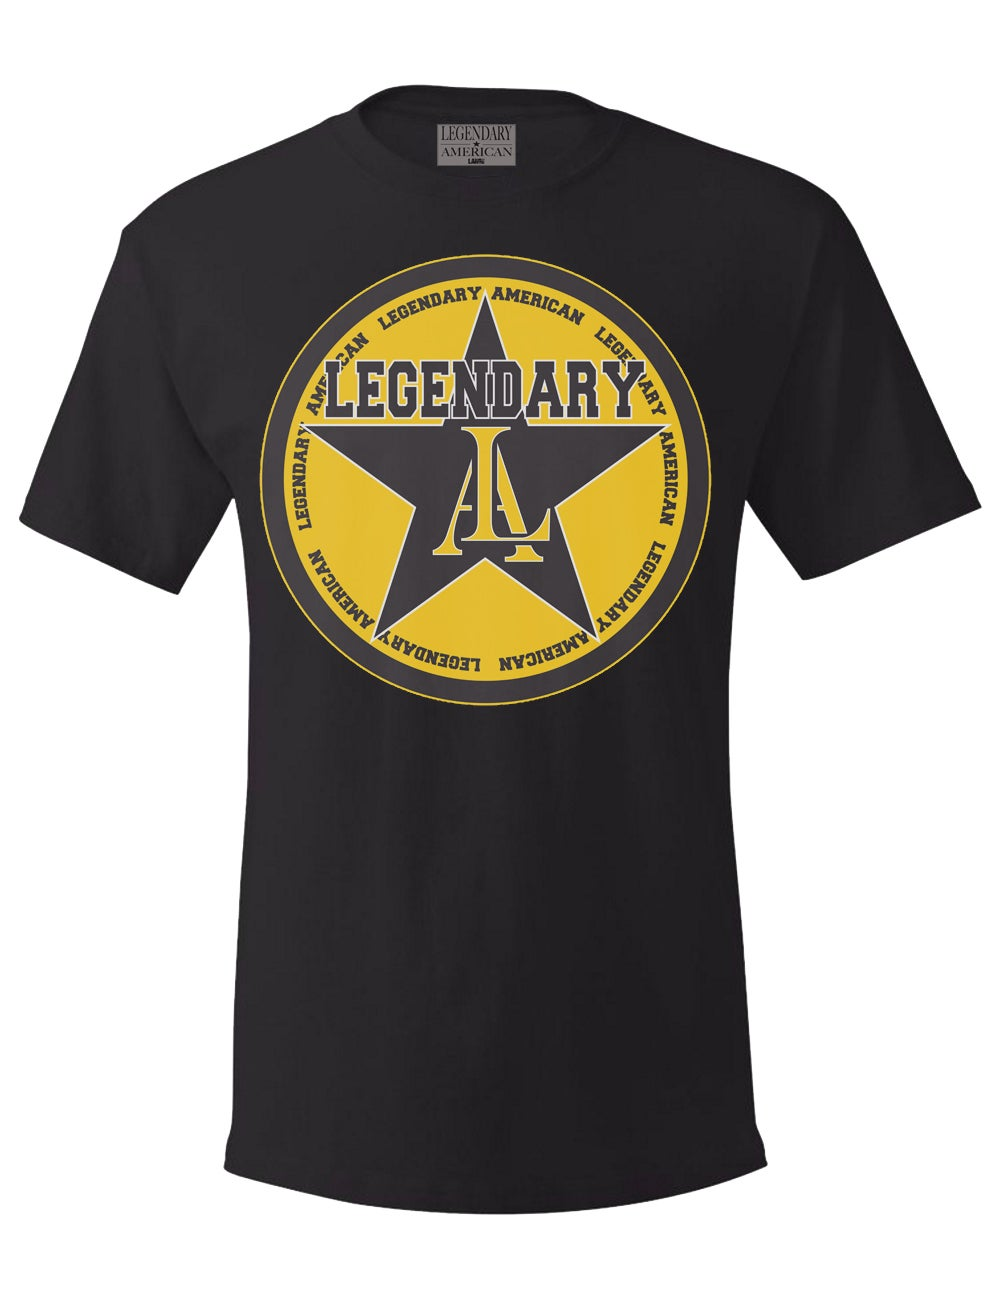 Image of Legendary American All Star tee